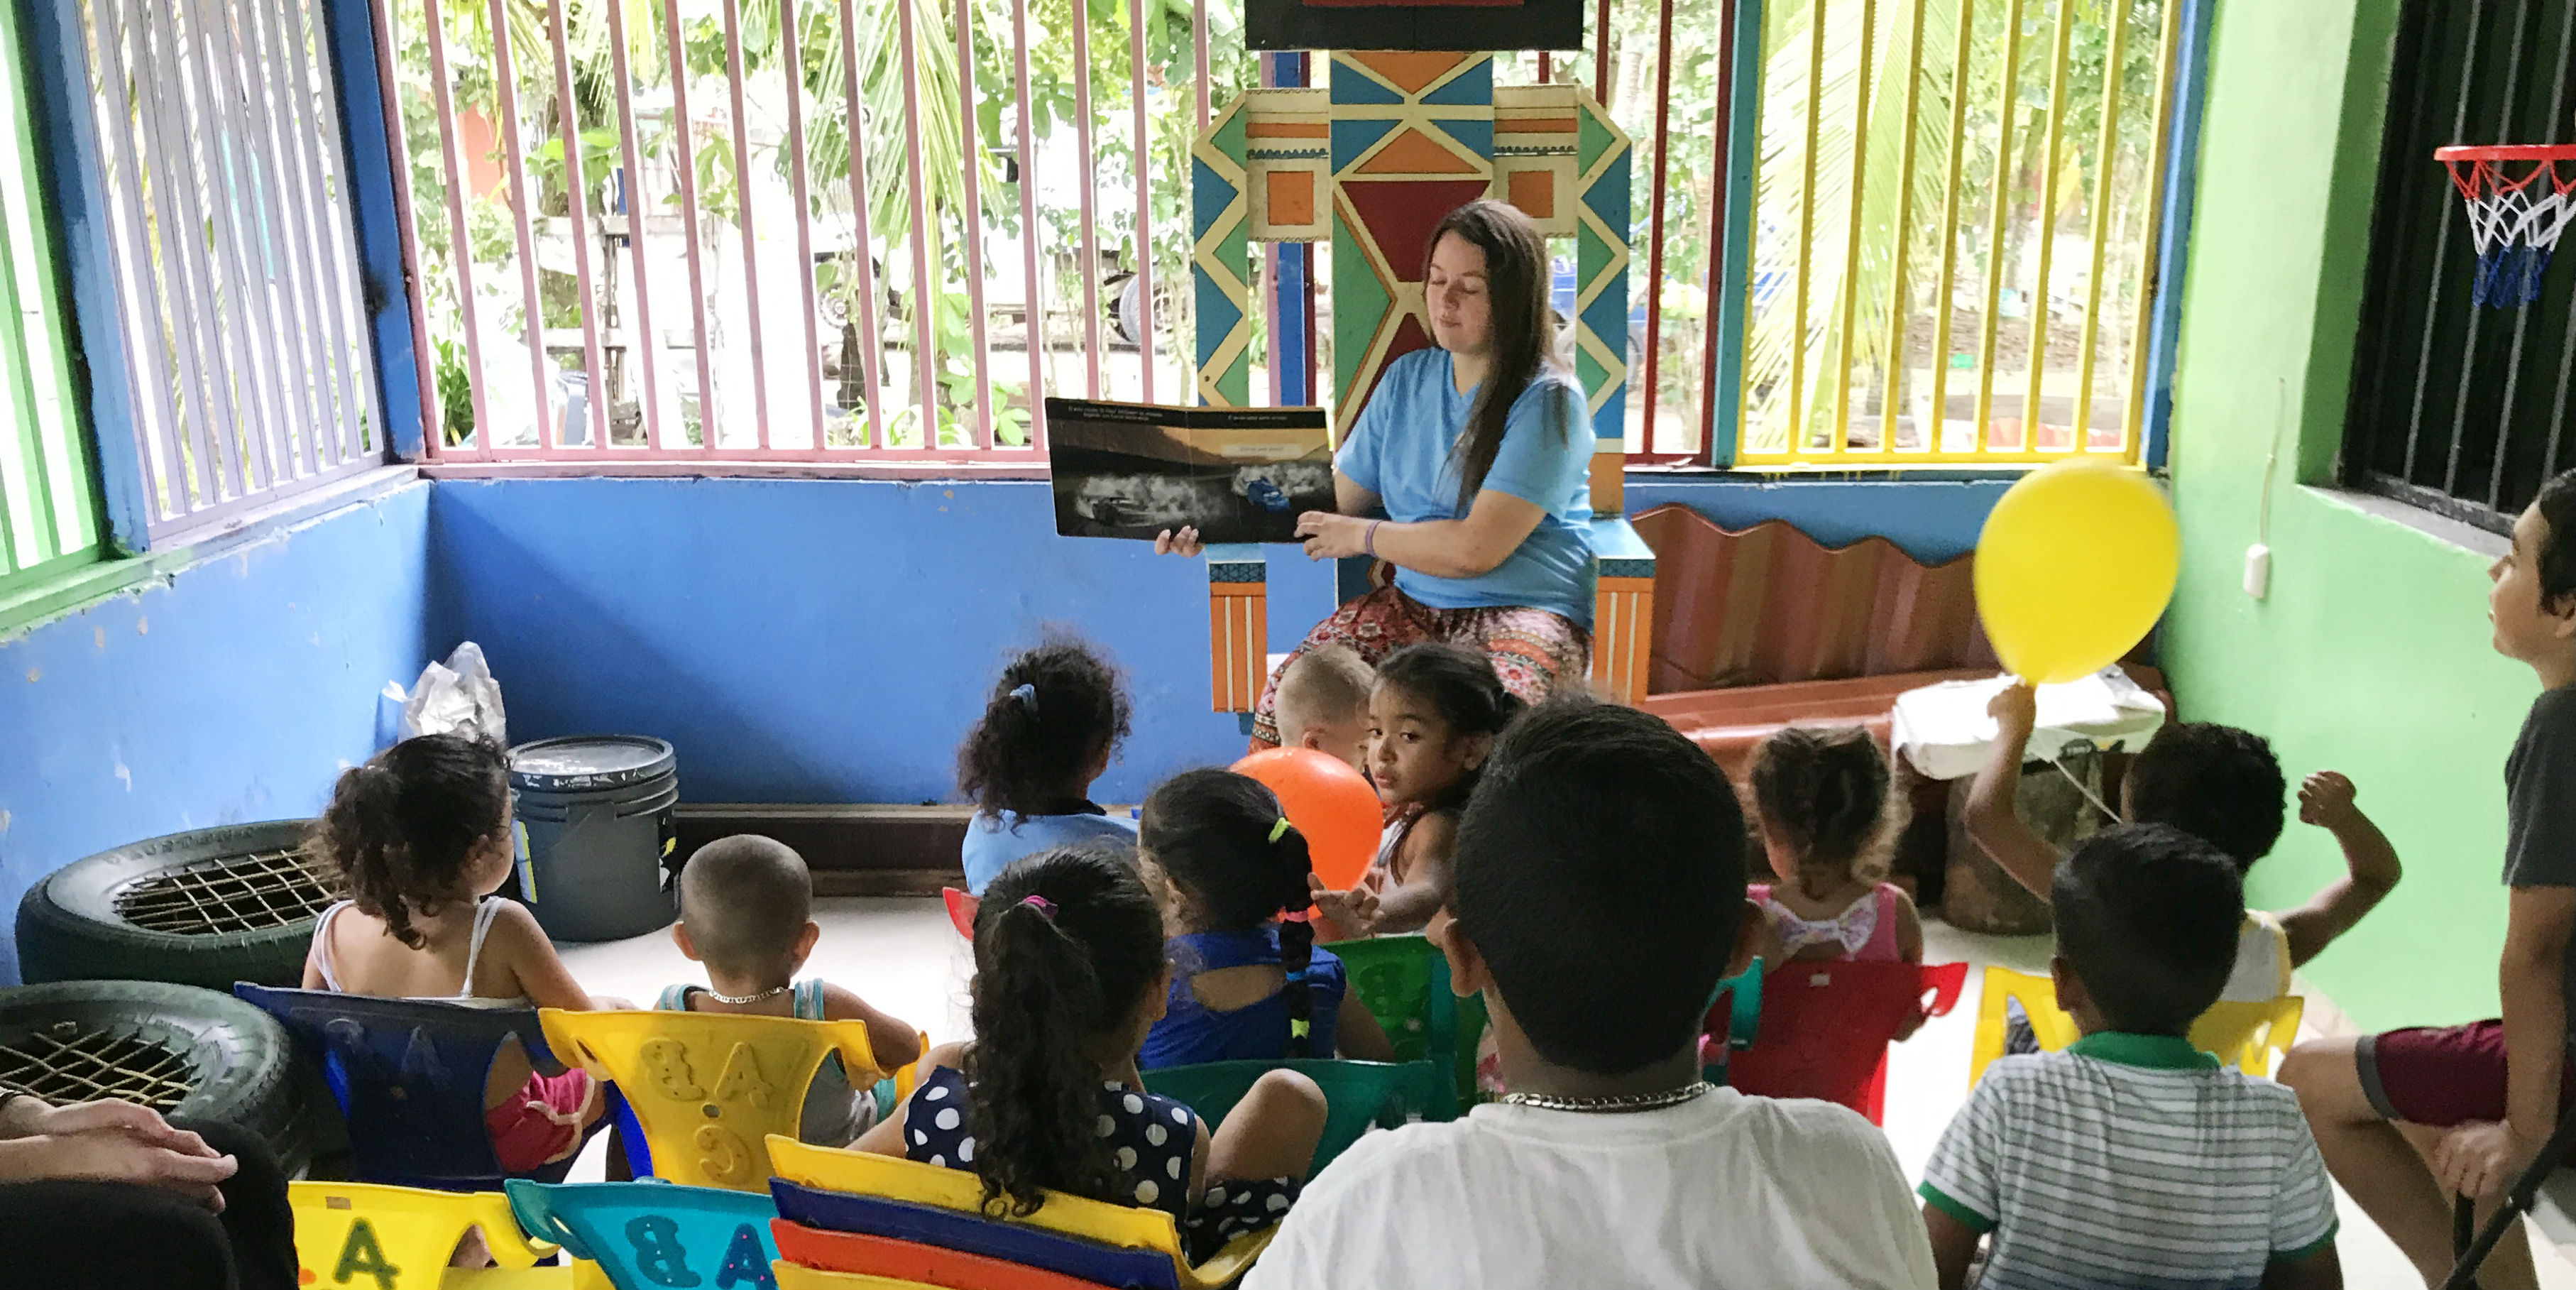 A TEFL certified teacher leads story time in Quepos, Costa Rica.